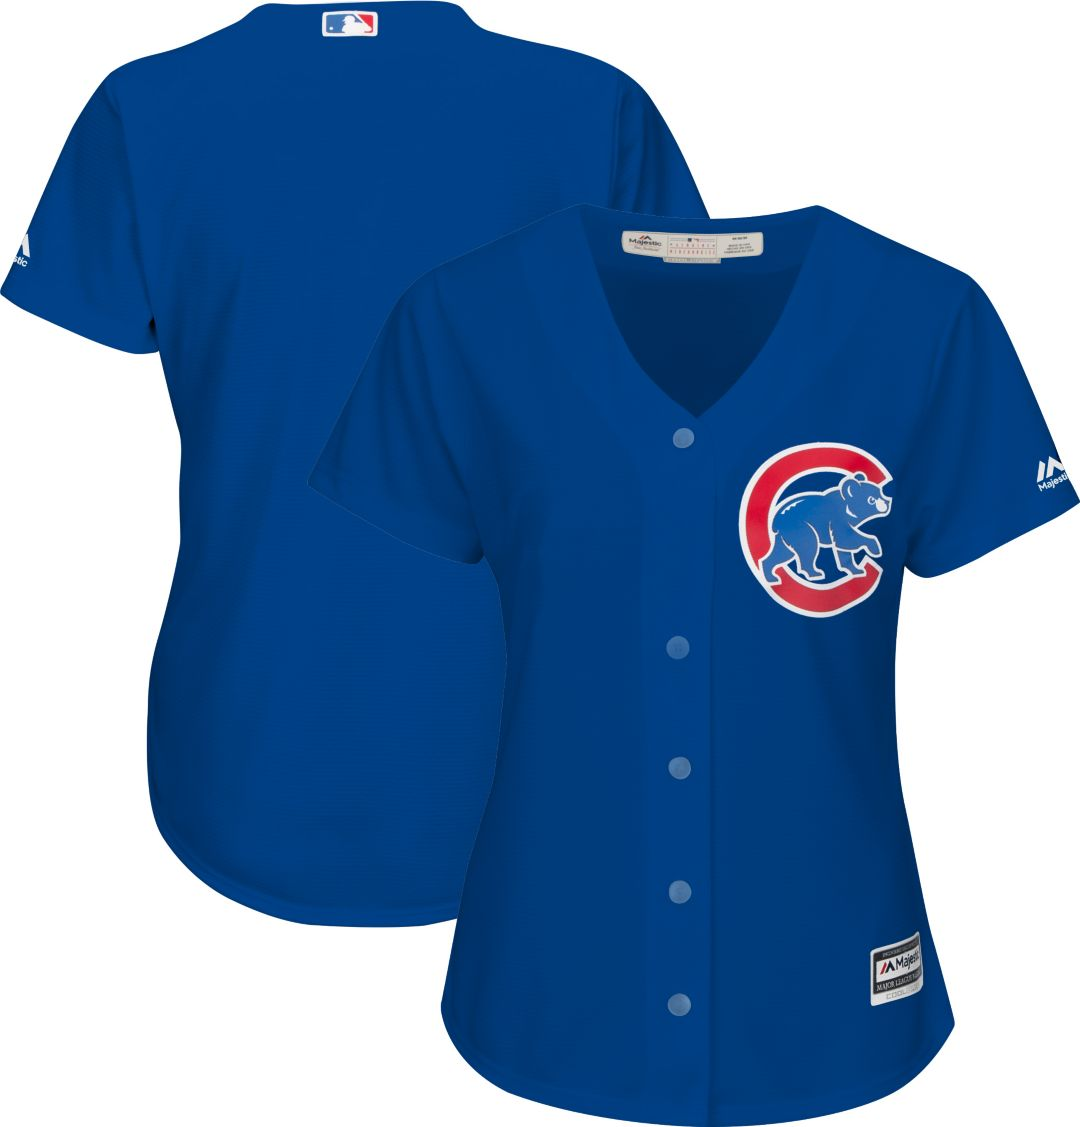 reputable site 3899f 9ed88 Majestic Women's Replica Chicago Cubs Cool Base Alternate Royal Jersey